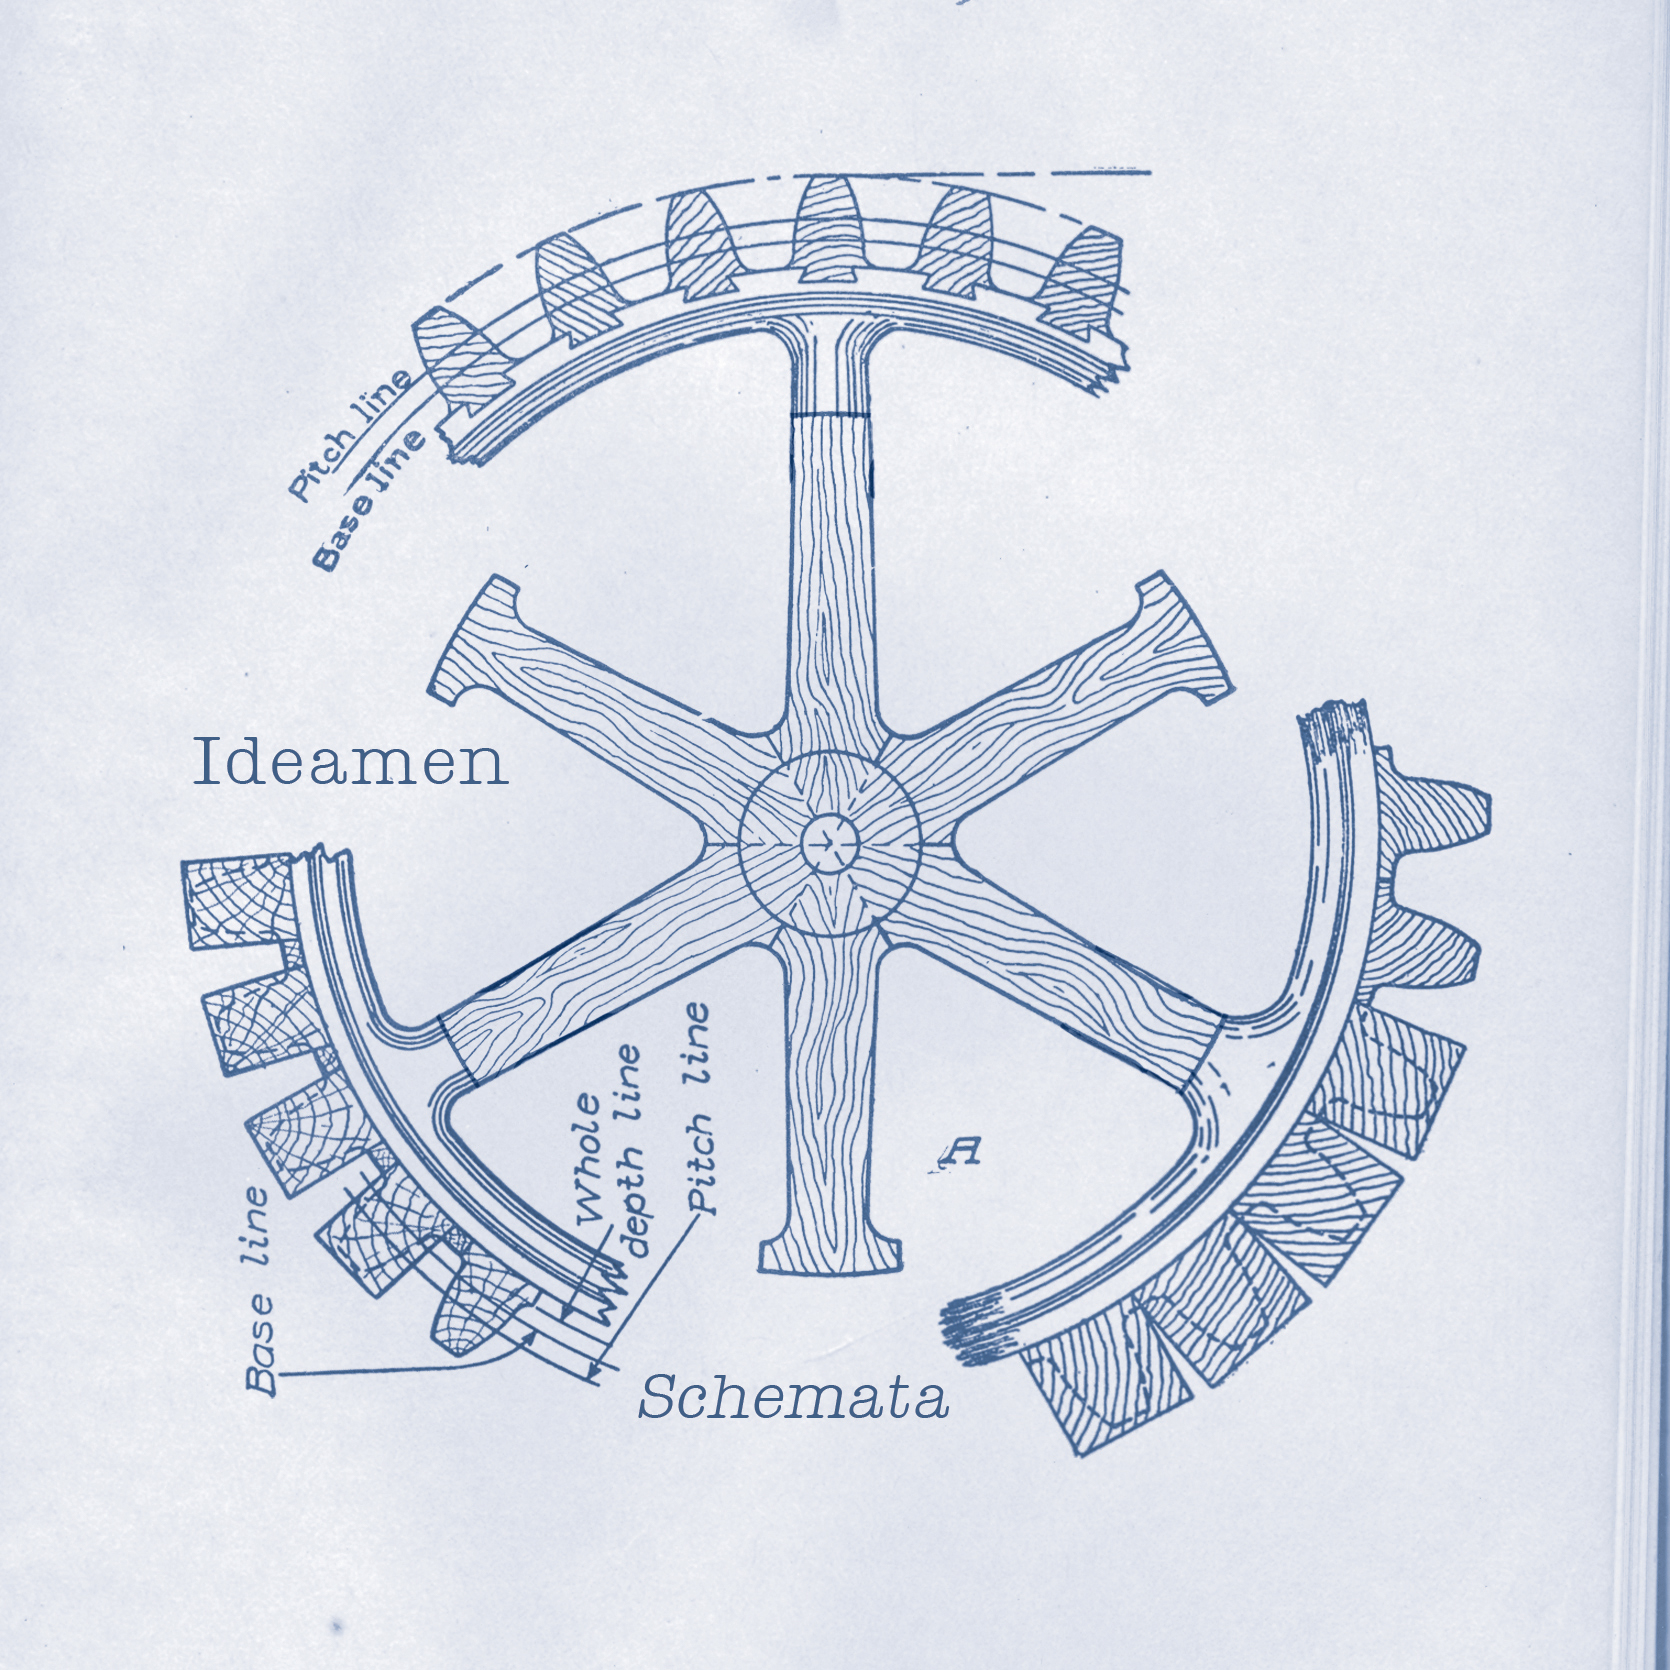 schemata-cd-label